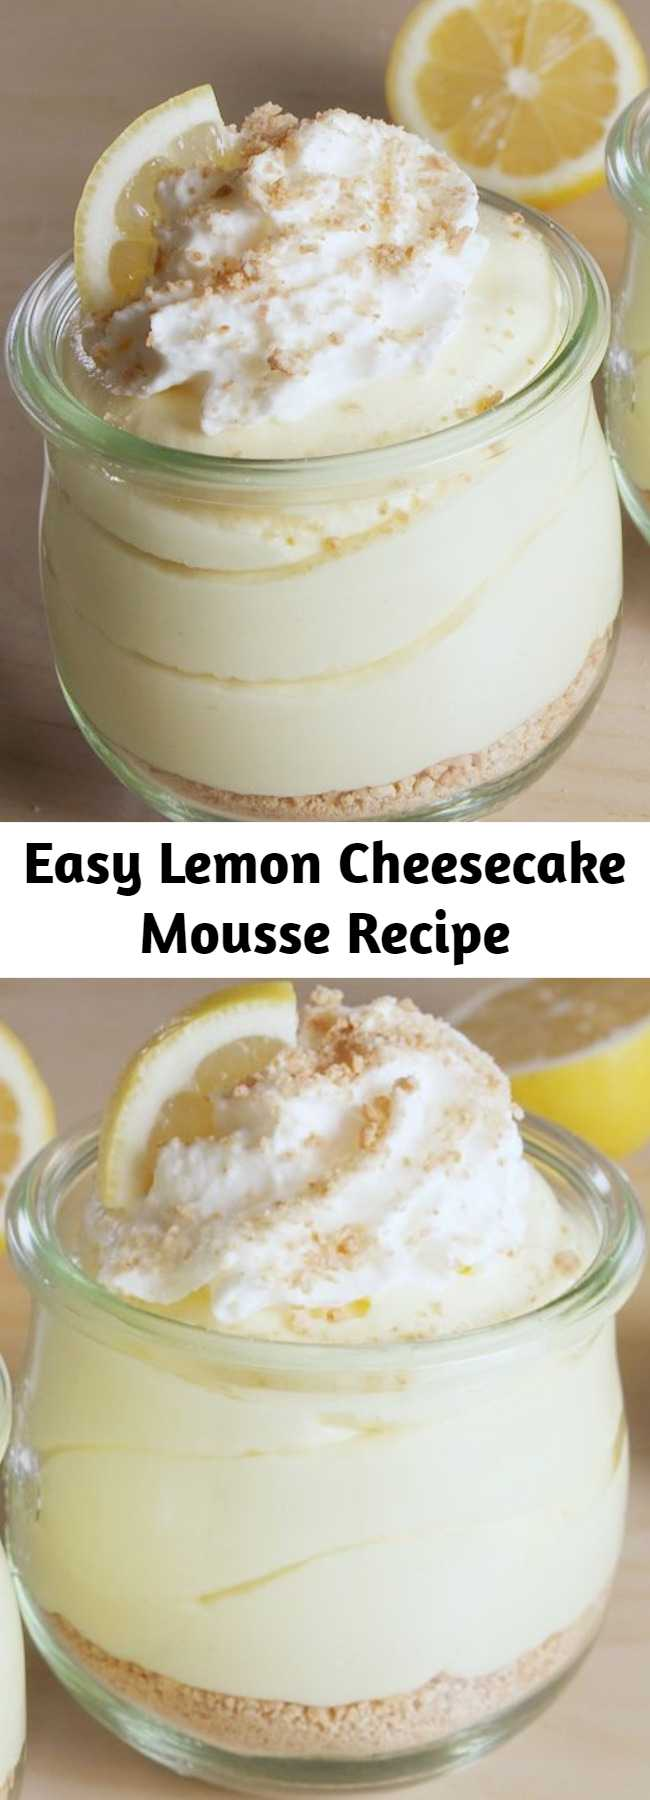 Easy Lemon Cheesecake Mousse Recipe - These light little cheesecake mousses ake the perfect spring or summer dessert - and we're obsessed! They're great for making ahead of the party or dinner party, then bringing out of the fridge last minute so you look like the organised chef you are. The biscuit base adds a lovely texture to these light, fluffy mousses. Plus, they're SO easy to make! #sweet #tart #lemon #cheesecake #mousse #dessert #easyrecipe #recipe #fruity